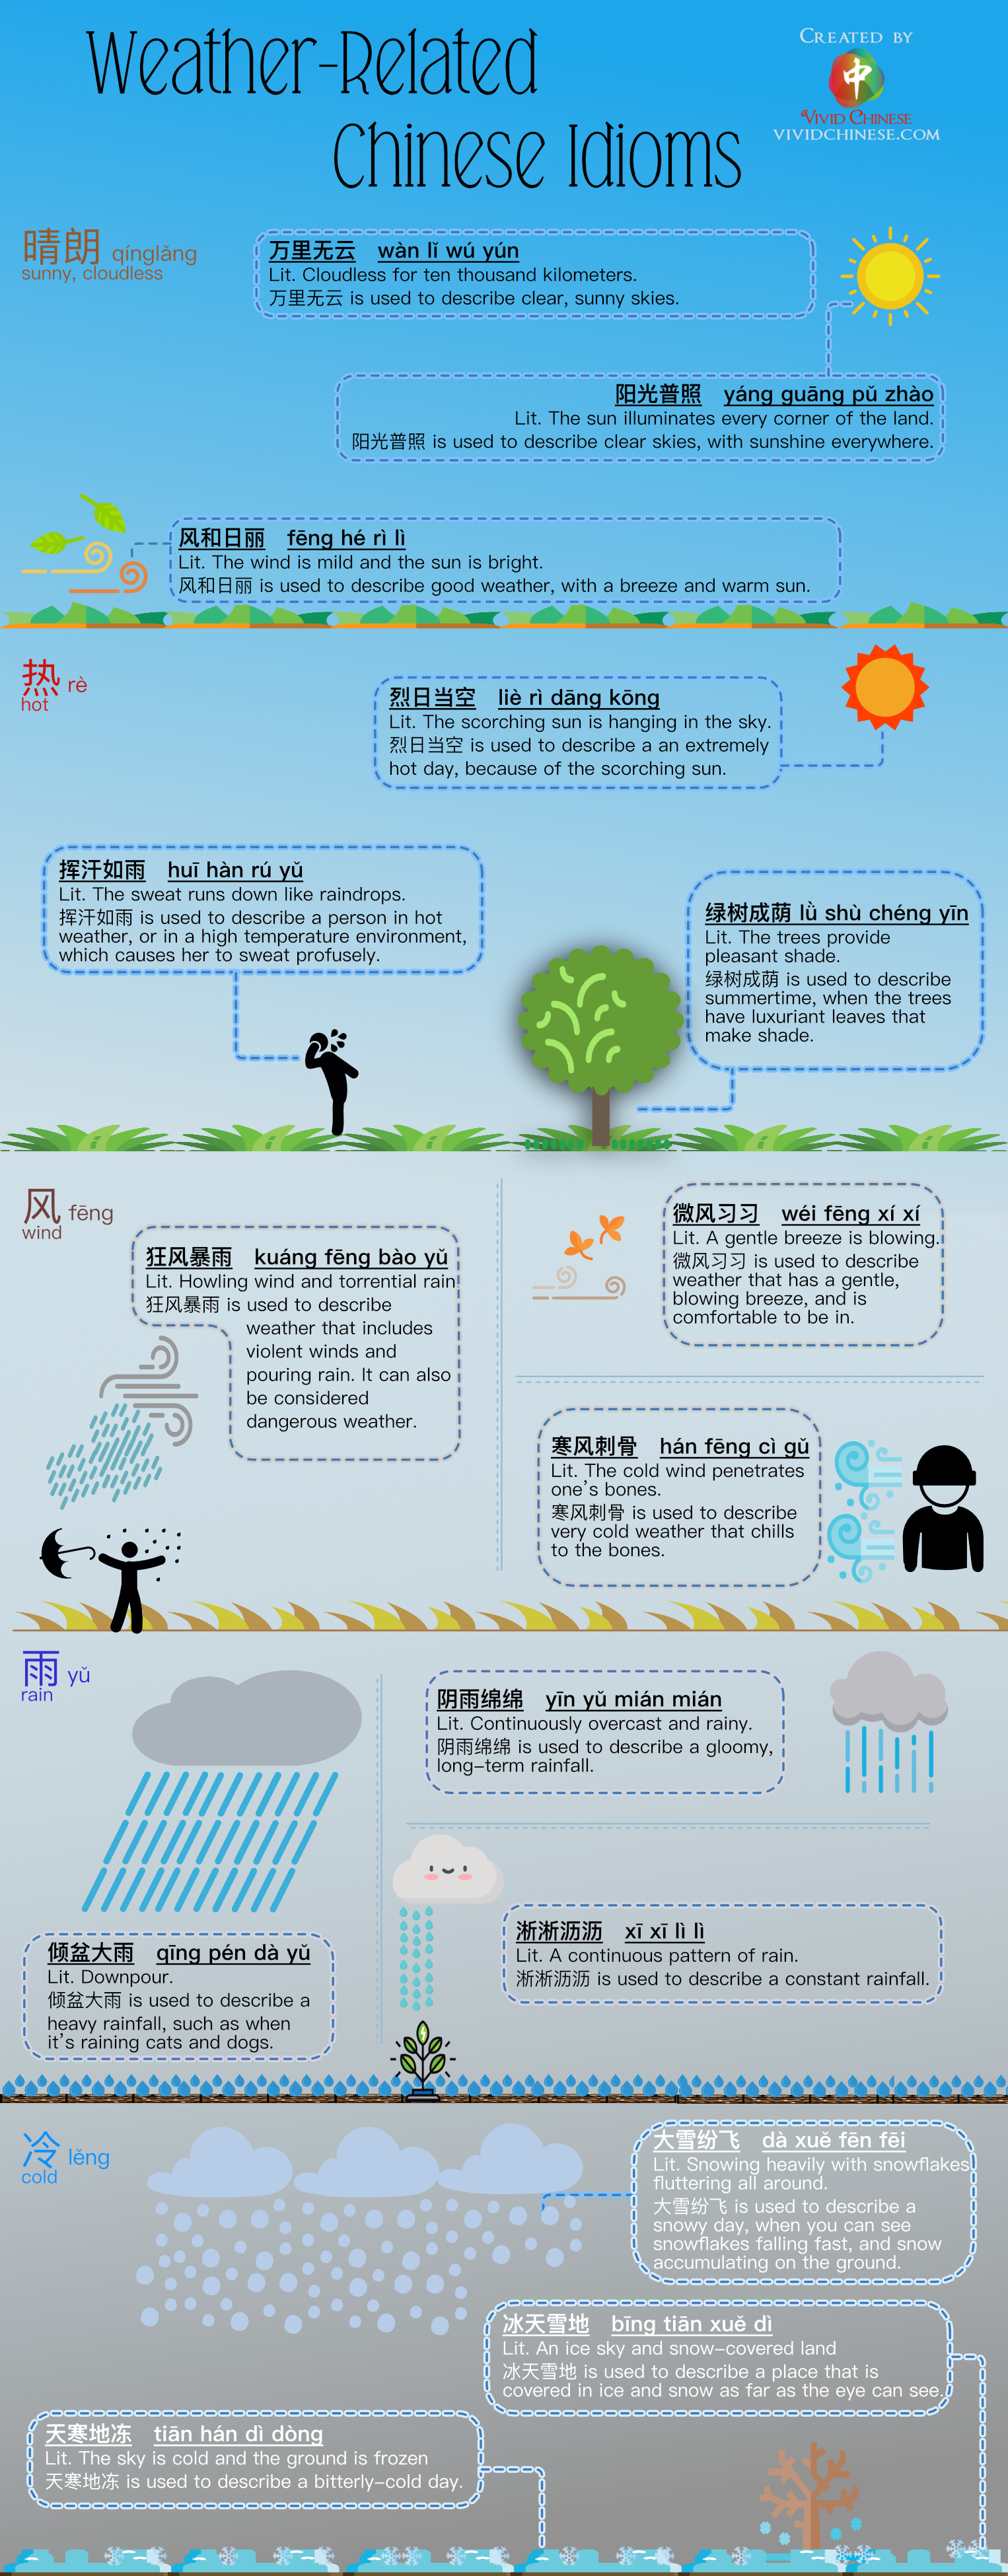 Weather-Related Chinese IdiomsSimplifiedChinese Version Infographic